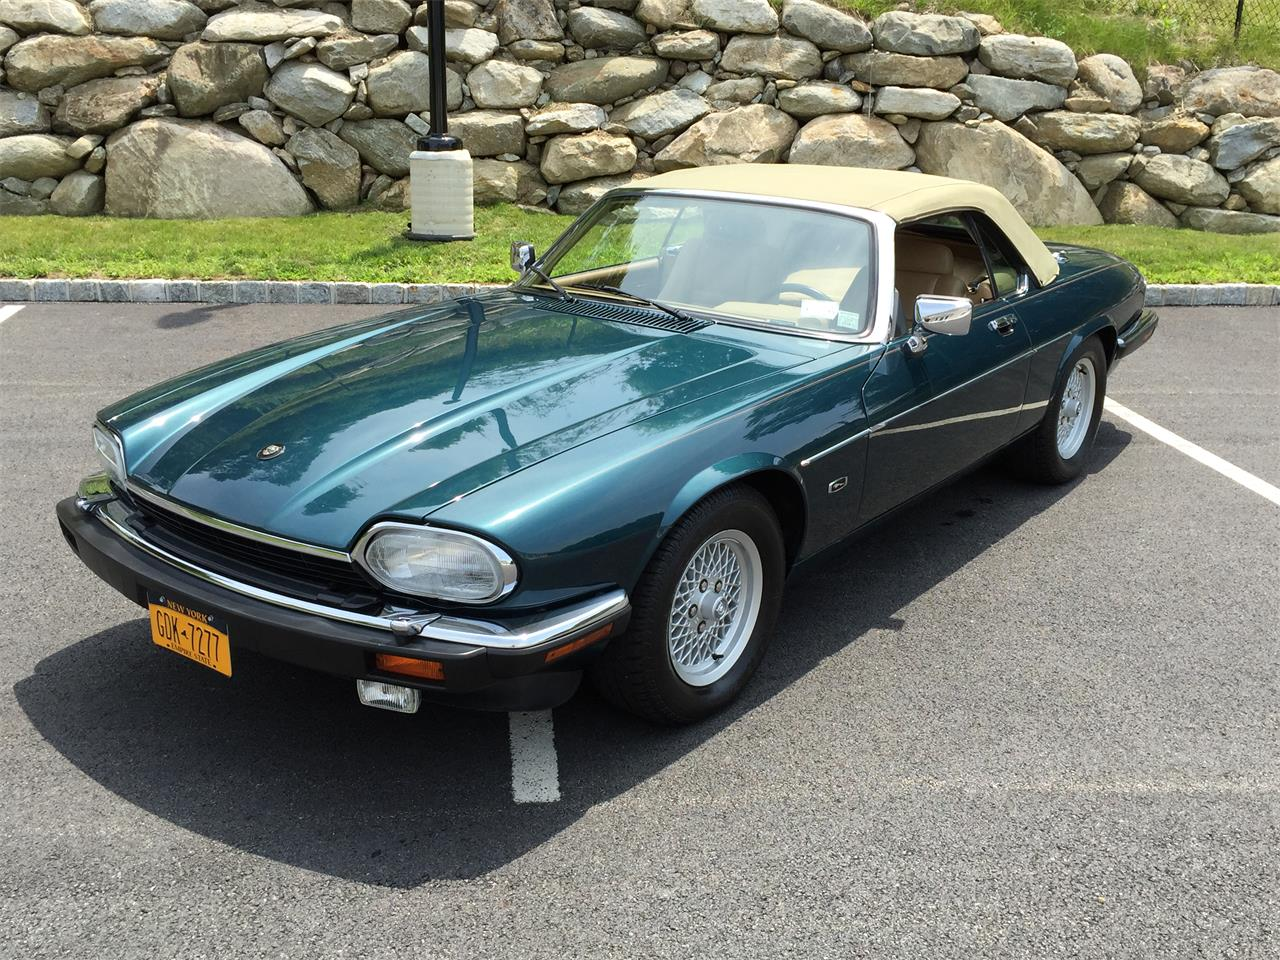 Large Picture of 1992 Jaguar XJS located in New York - $12,000.00 - EVKT